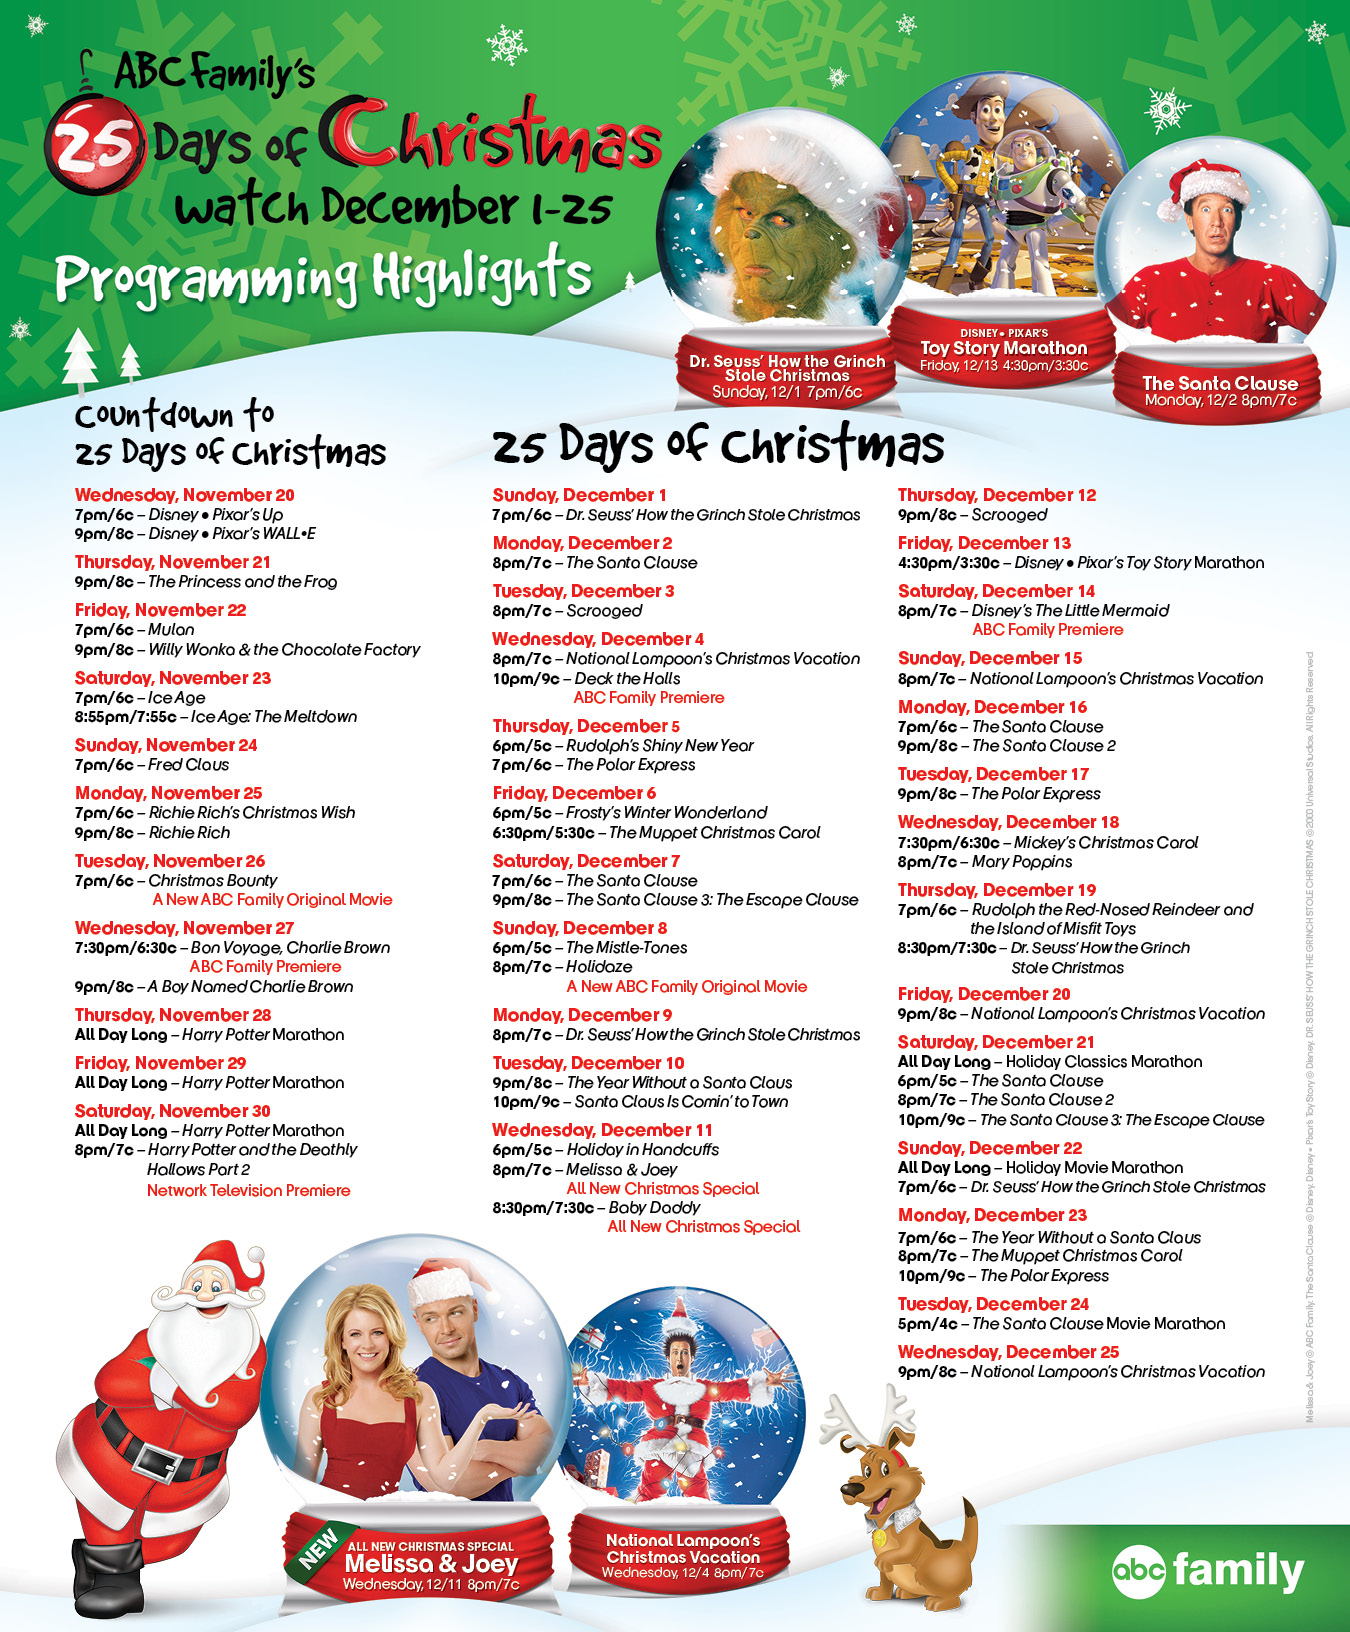 abc familys 25 days of christmas schedule finnegan and the hughes